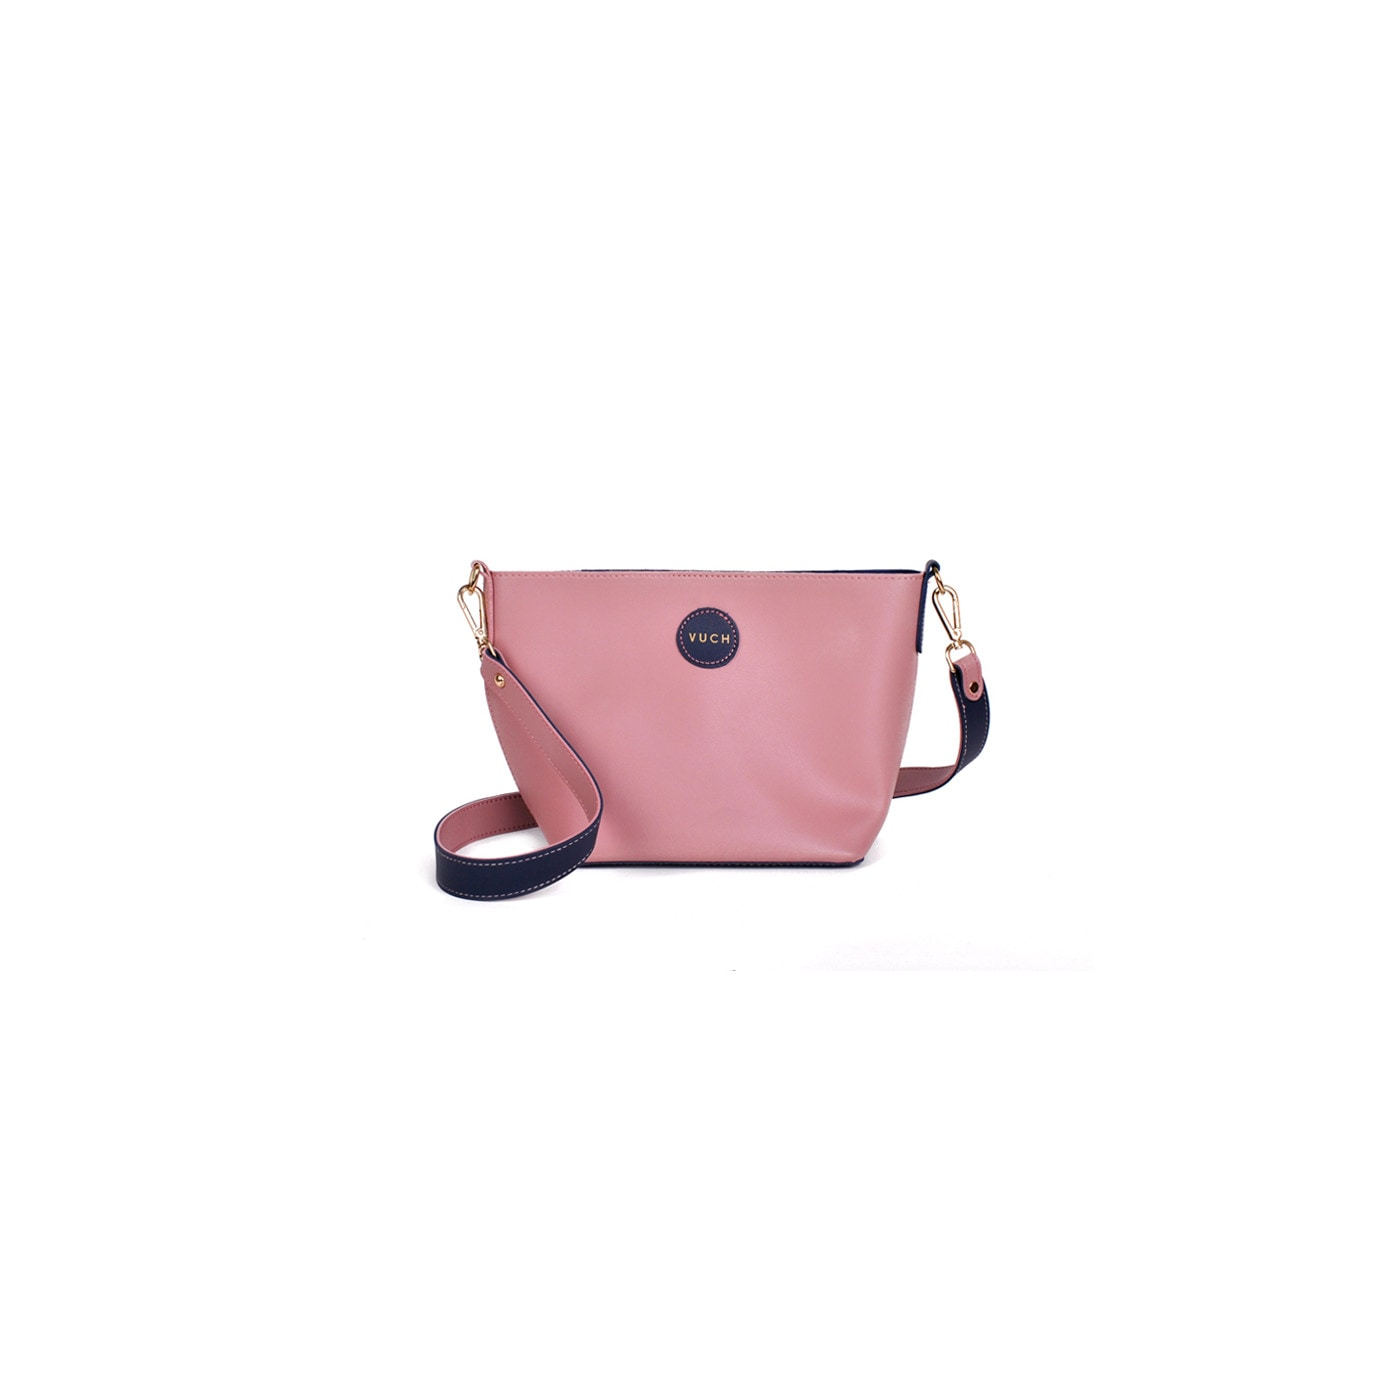 Women's Handbag VUCH Invert Collection